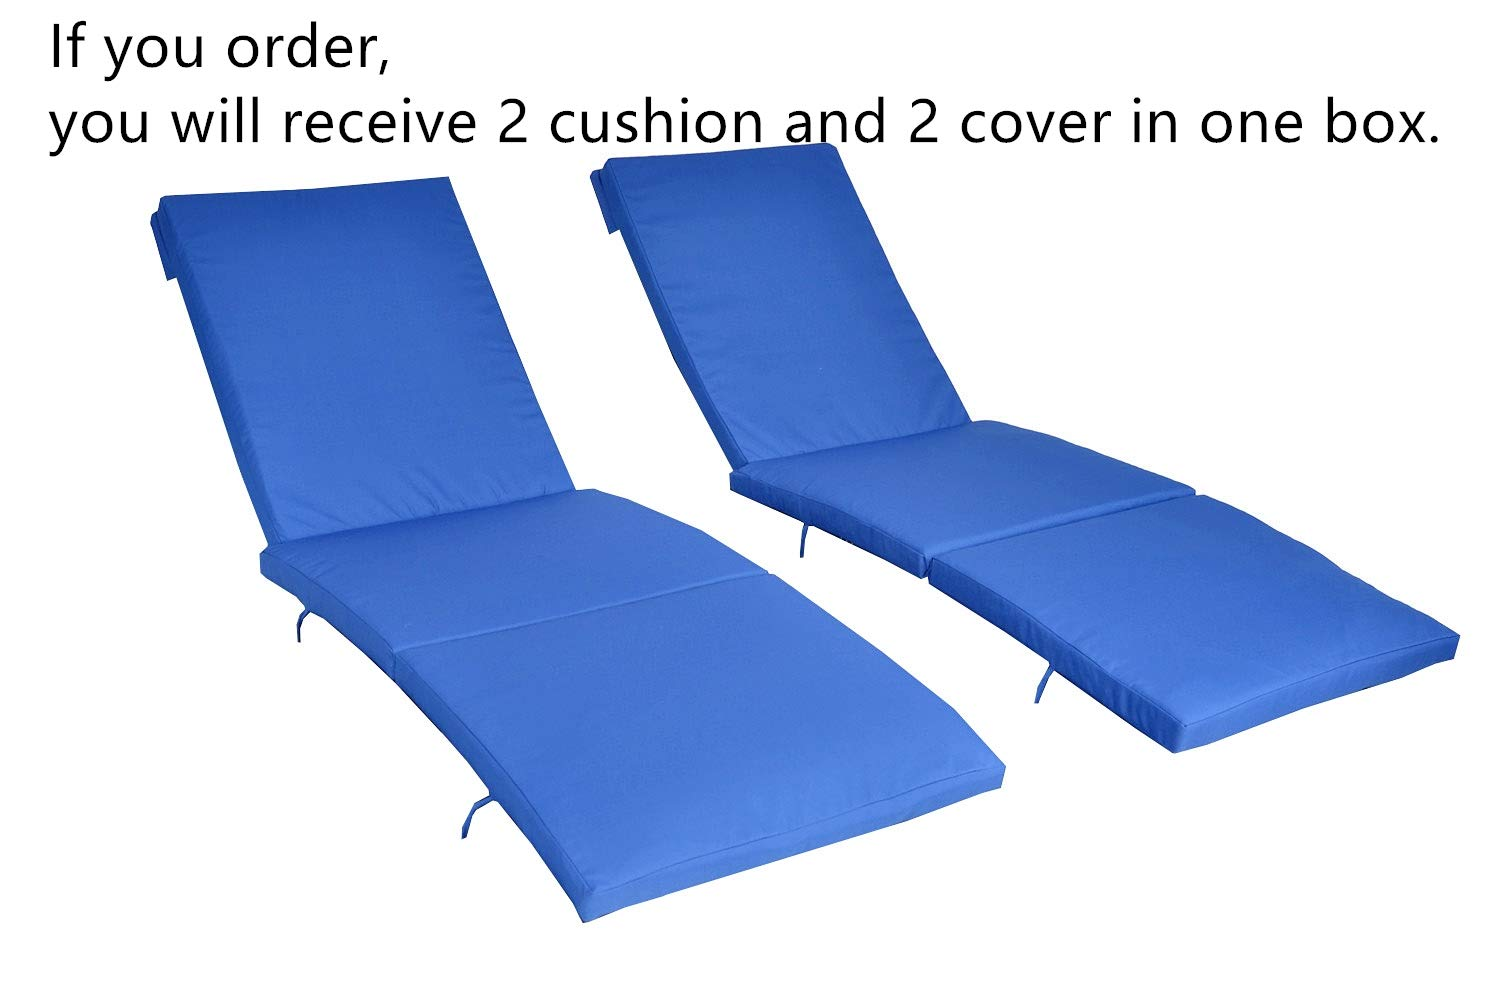 JETIME 2Pcs Royal Blue Cushion and Cover of Only Armless and Armed Lounge Chair